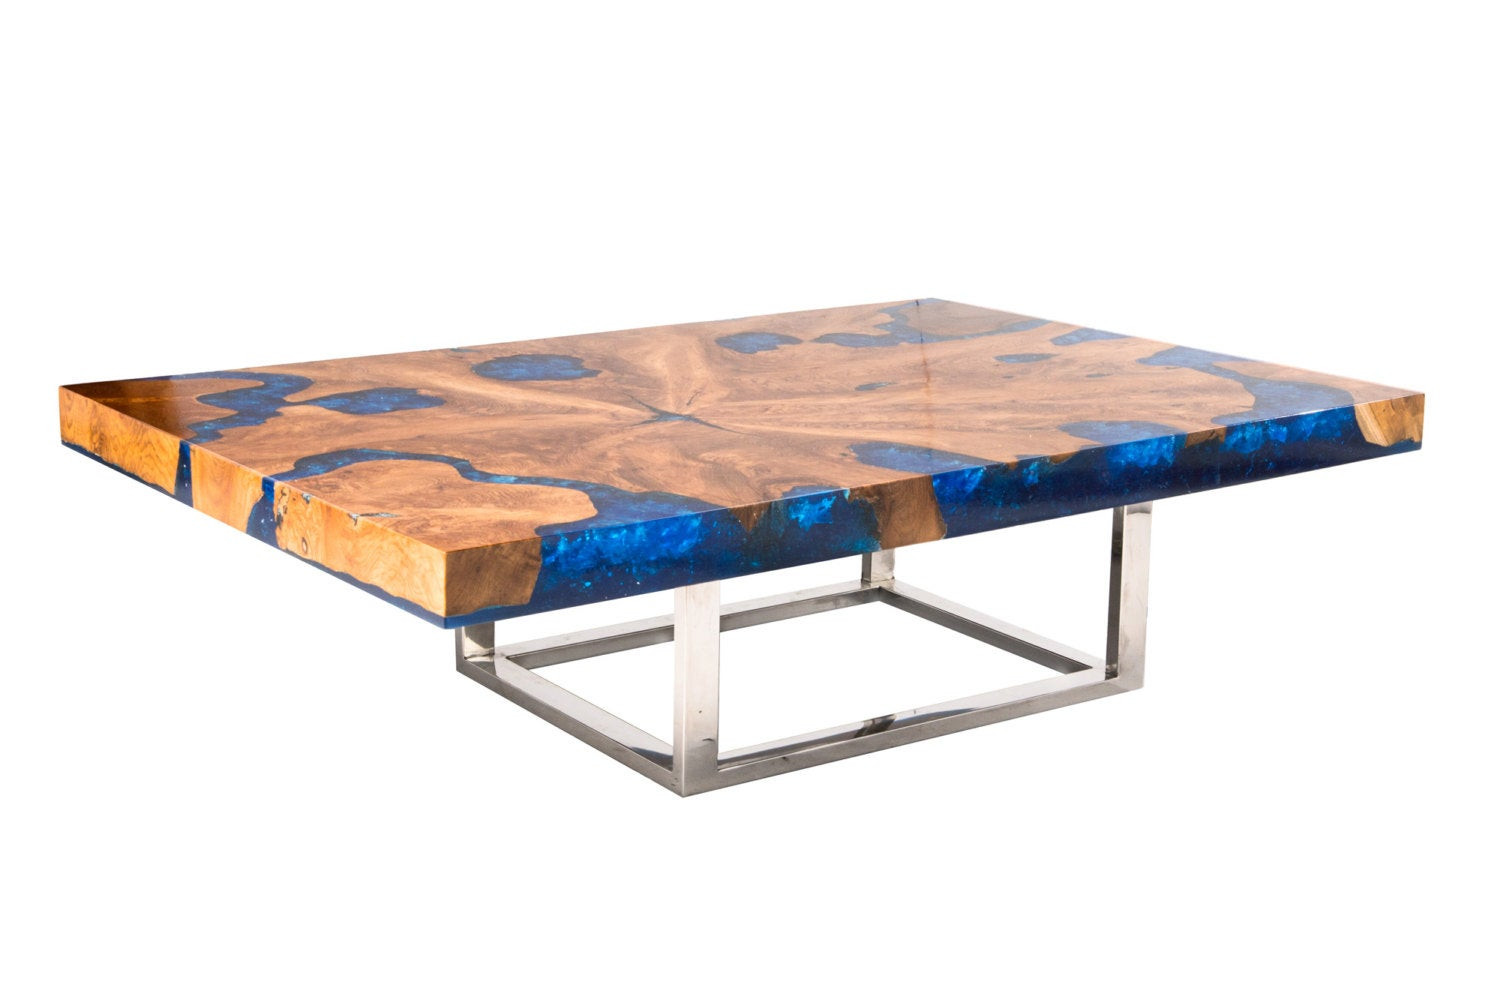 Best ideas about Resin Coffee Table . Save or Pin Blue Cracked Resin Coffee Table Now.